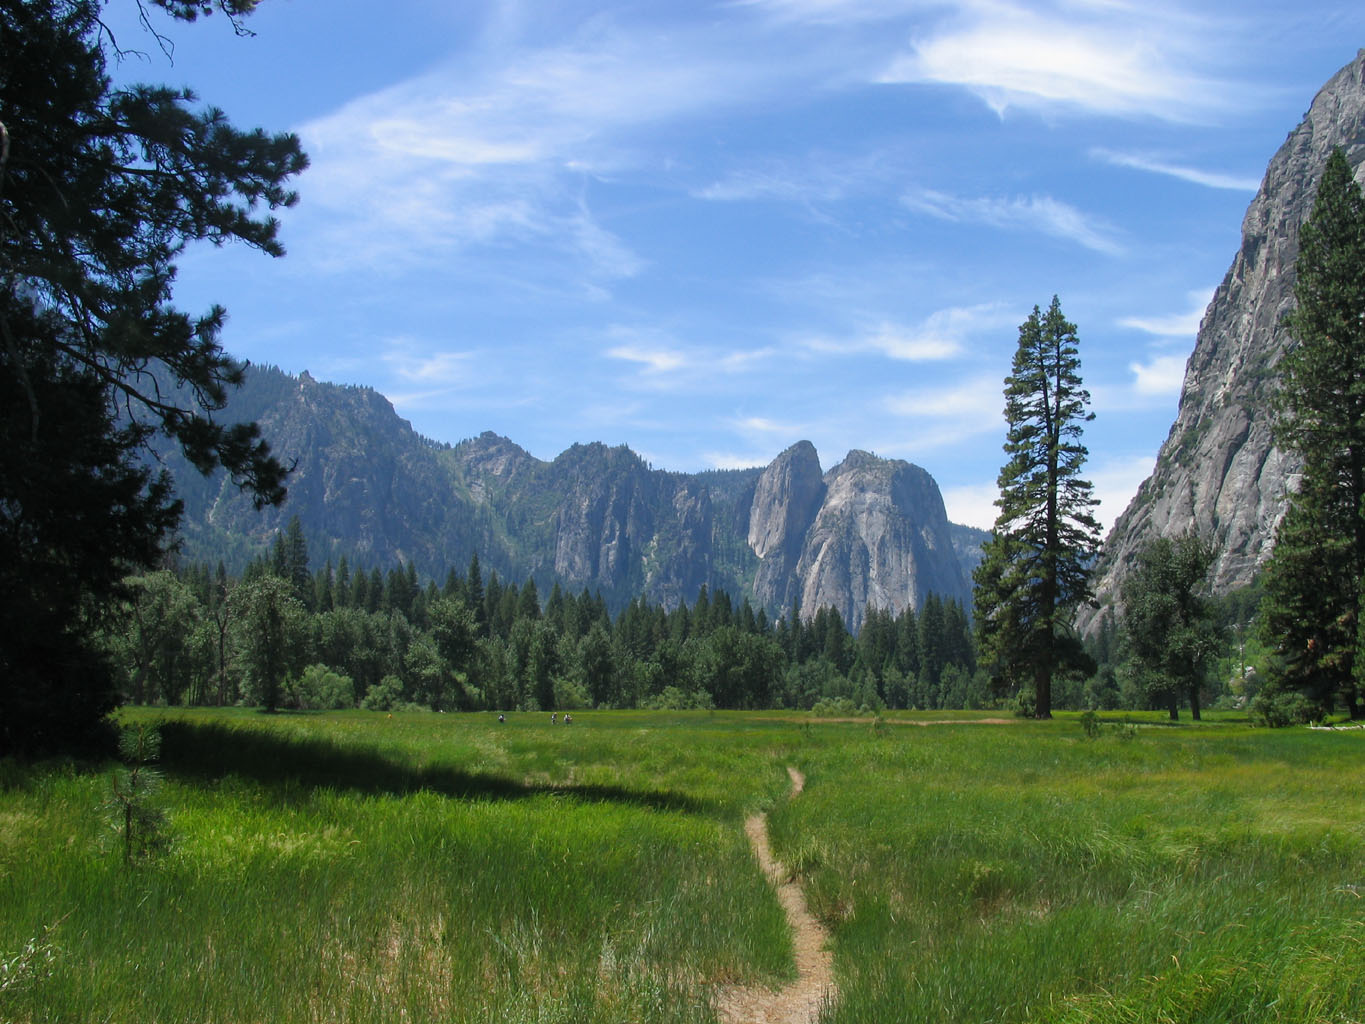 Yosemite National Park Wallpapers   HD Wallpapers 25535 1365x1024